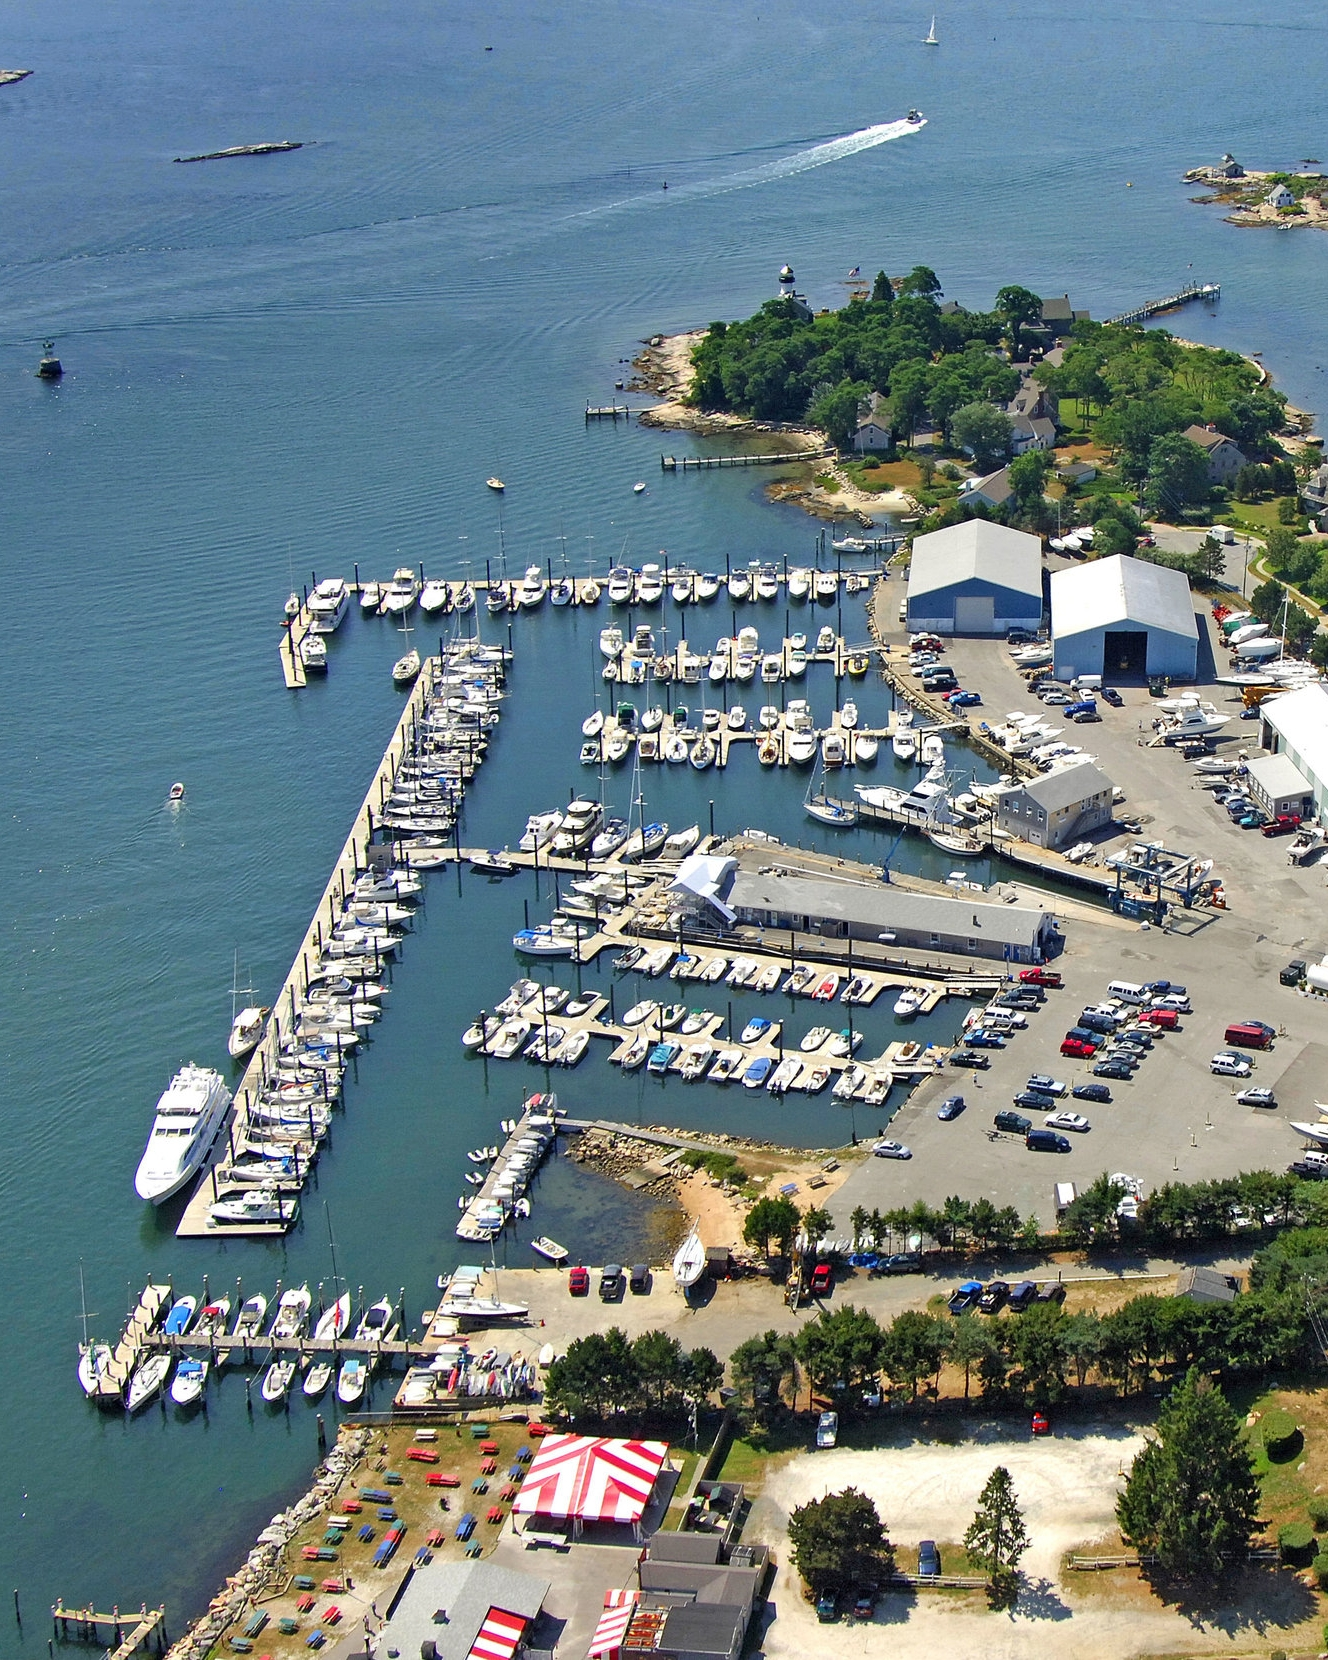 Marina - Nestled on the coastal community of Mystic, CT it should come as no surprise that Mystic Oil is the premier marketer of marine fuels on the shoreline, and nobody knows the game better than us. Boaters ourselves, Mystic offers ValvTect premium gas and diesel additives, as well as Shell and Gulf brands on the water.